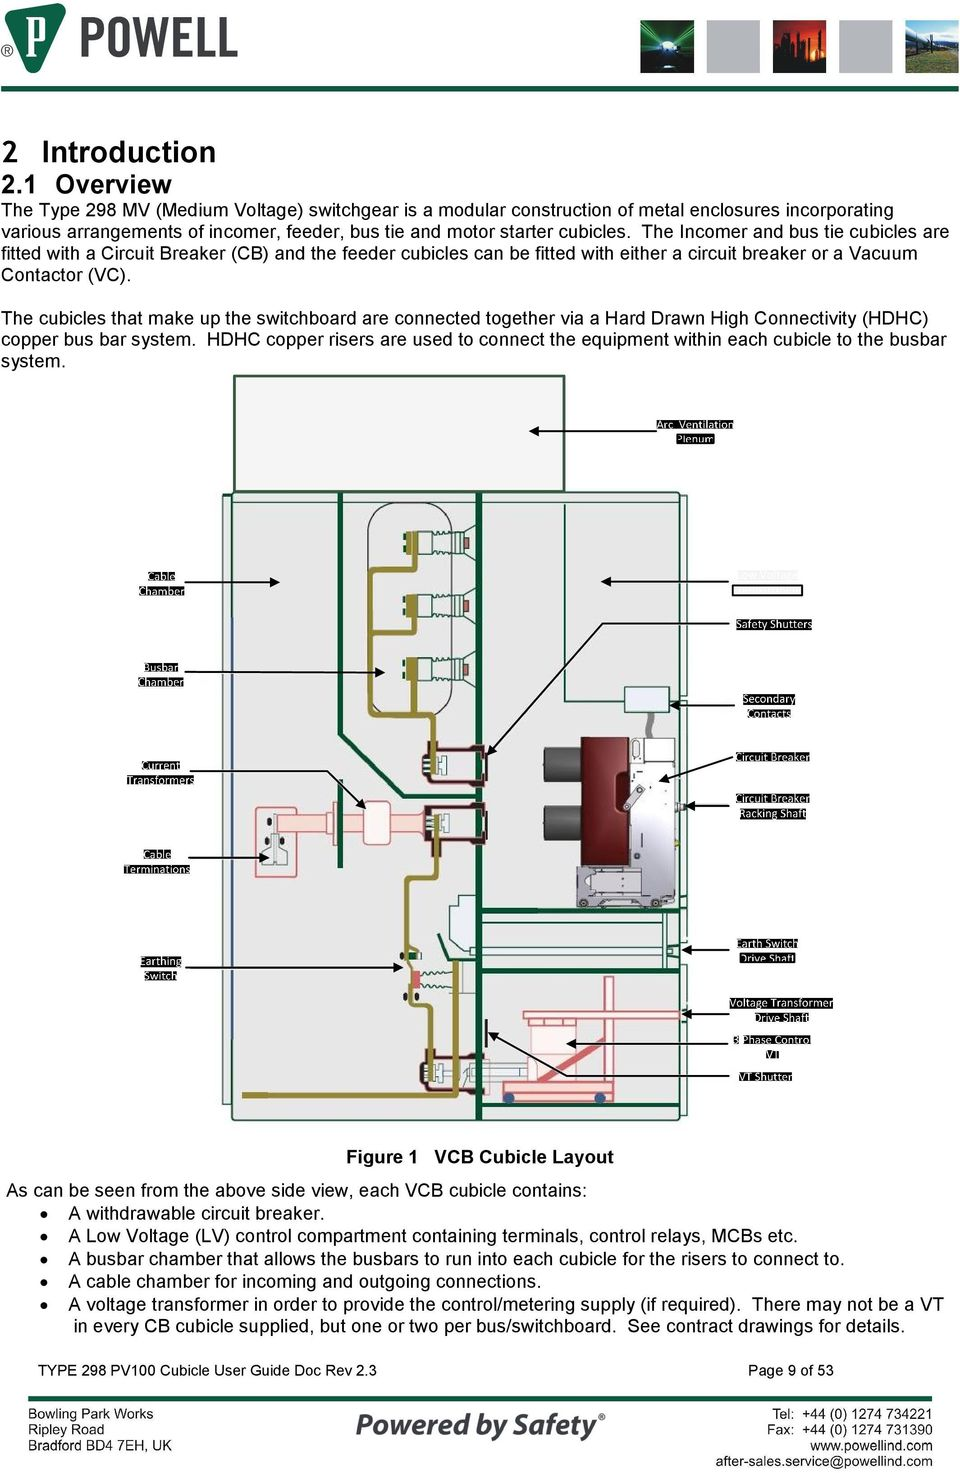 Type298 User Guide For Circuit Breaker Cubicle